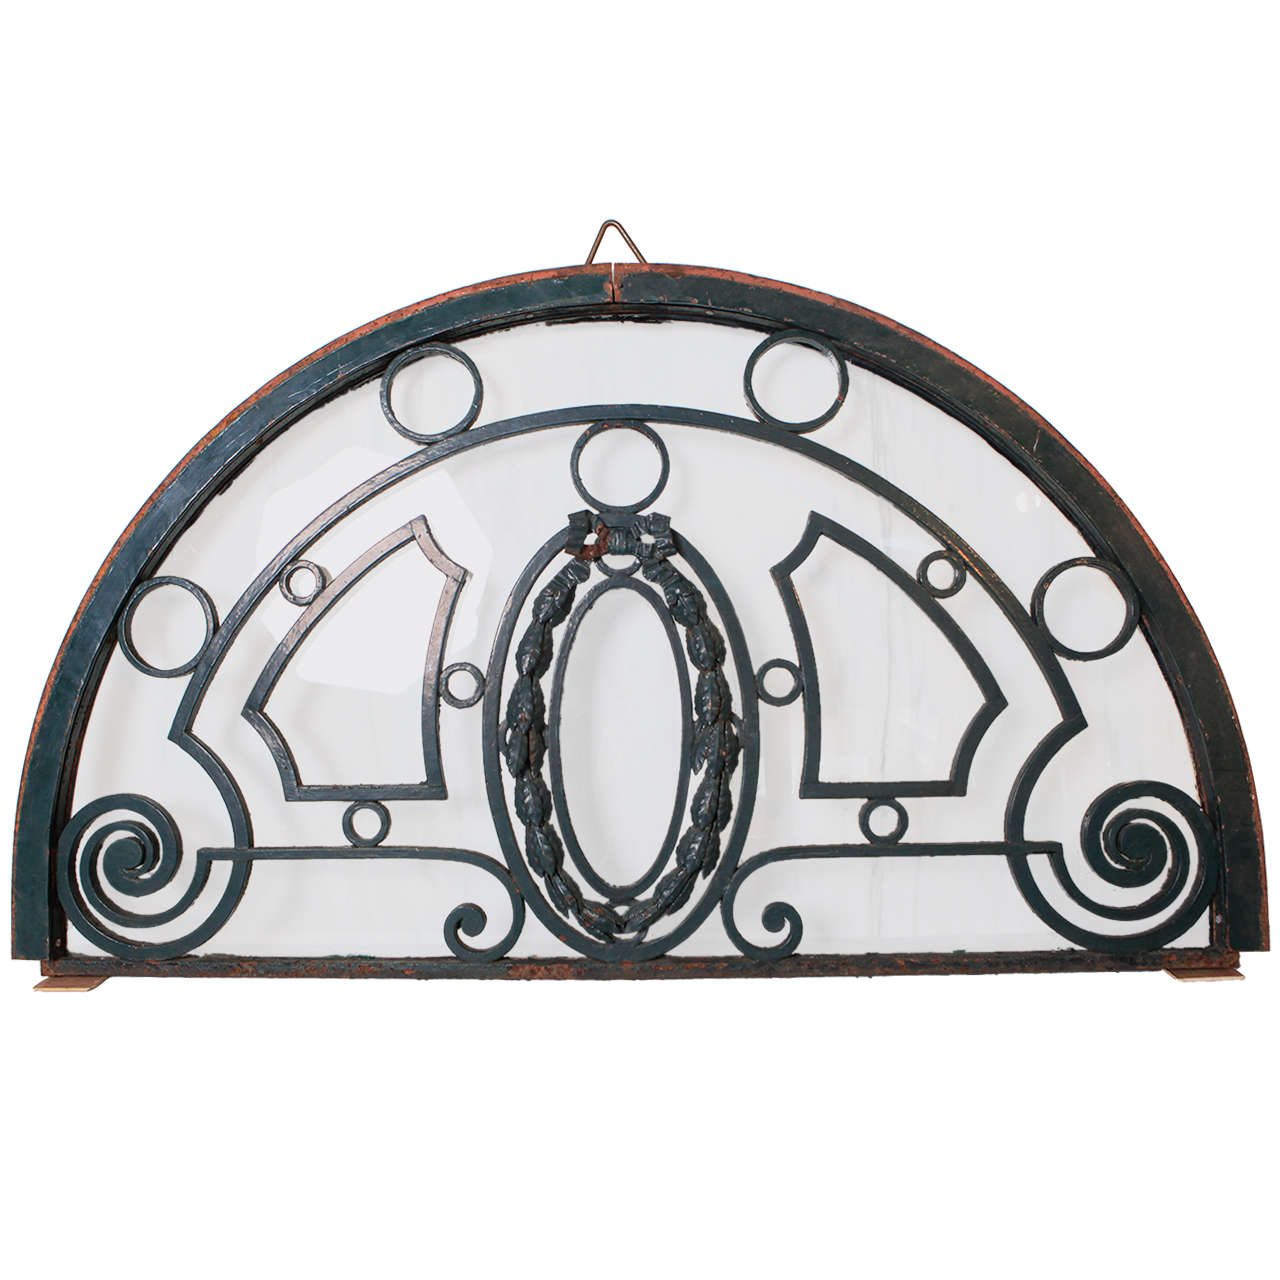 19th Century French Iron Transom Window For Sale At 1stdibs